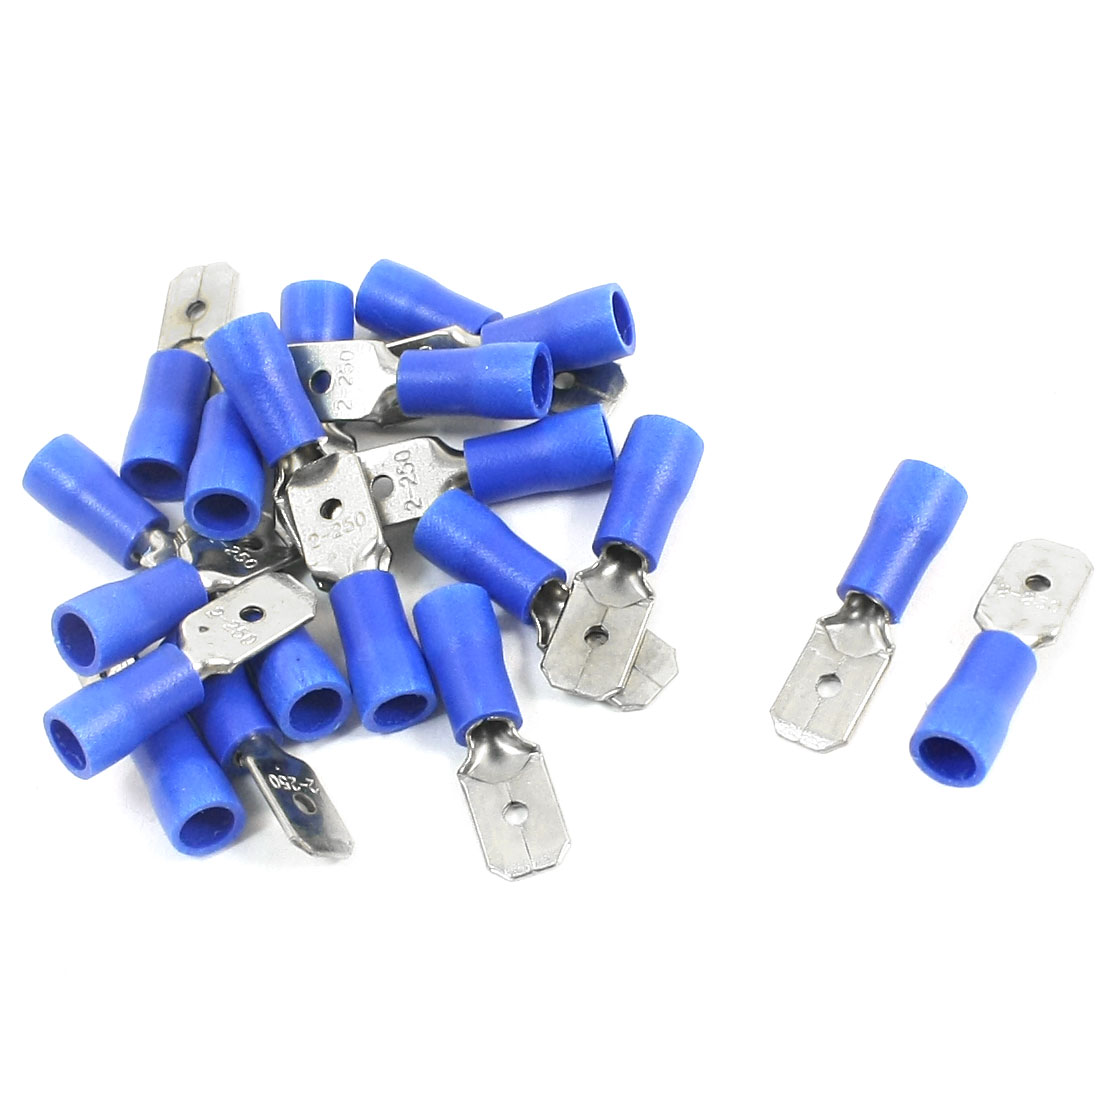 20Pcs 16-14 AWG MDD2-250 Blue PVC Sleeve Insulated Cable Terminals Crimp